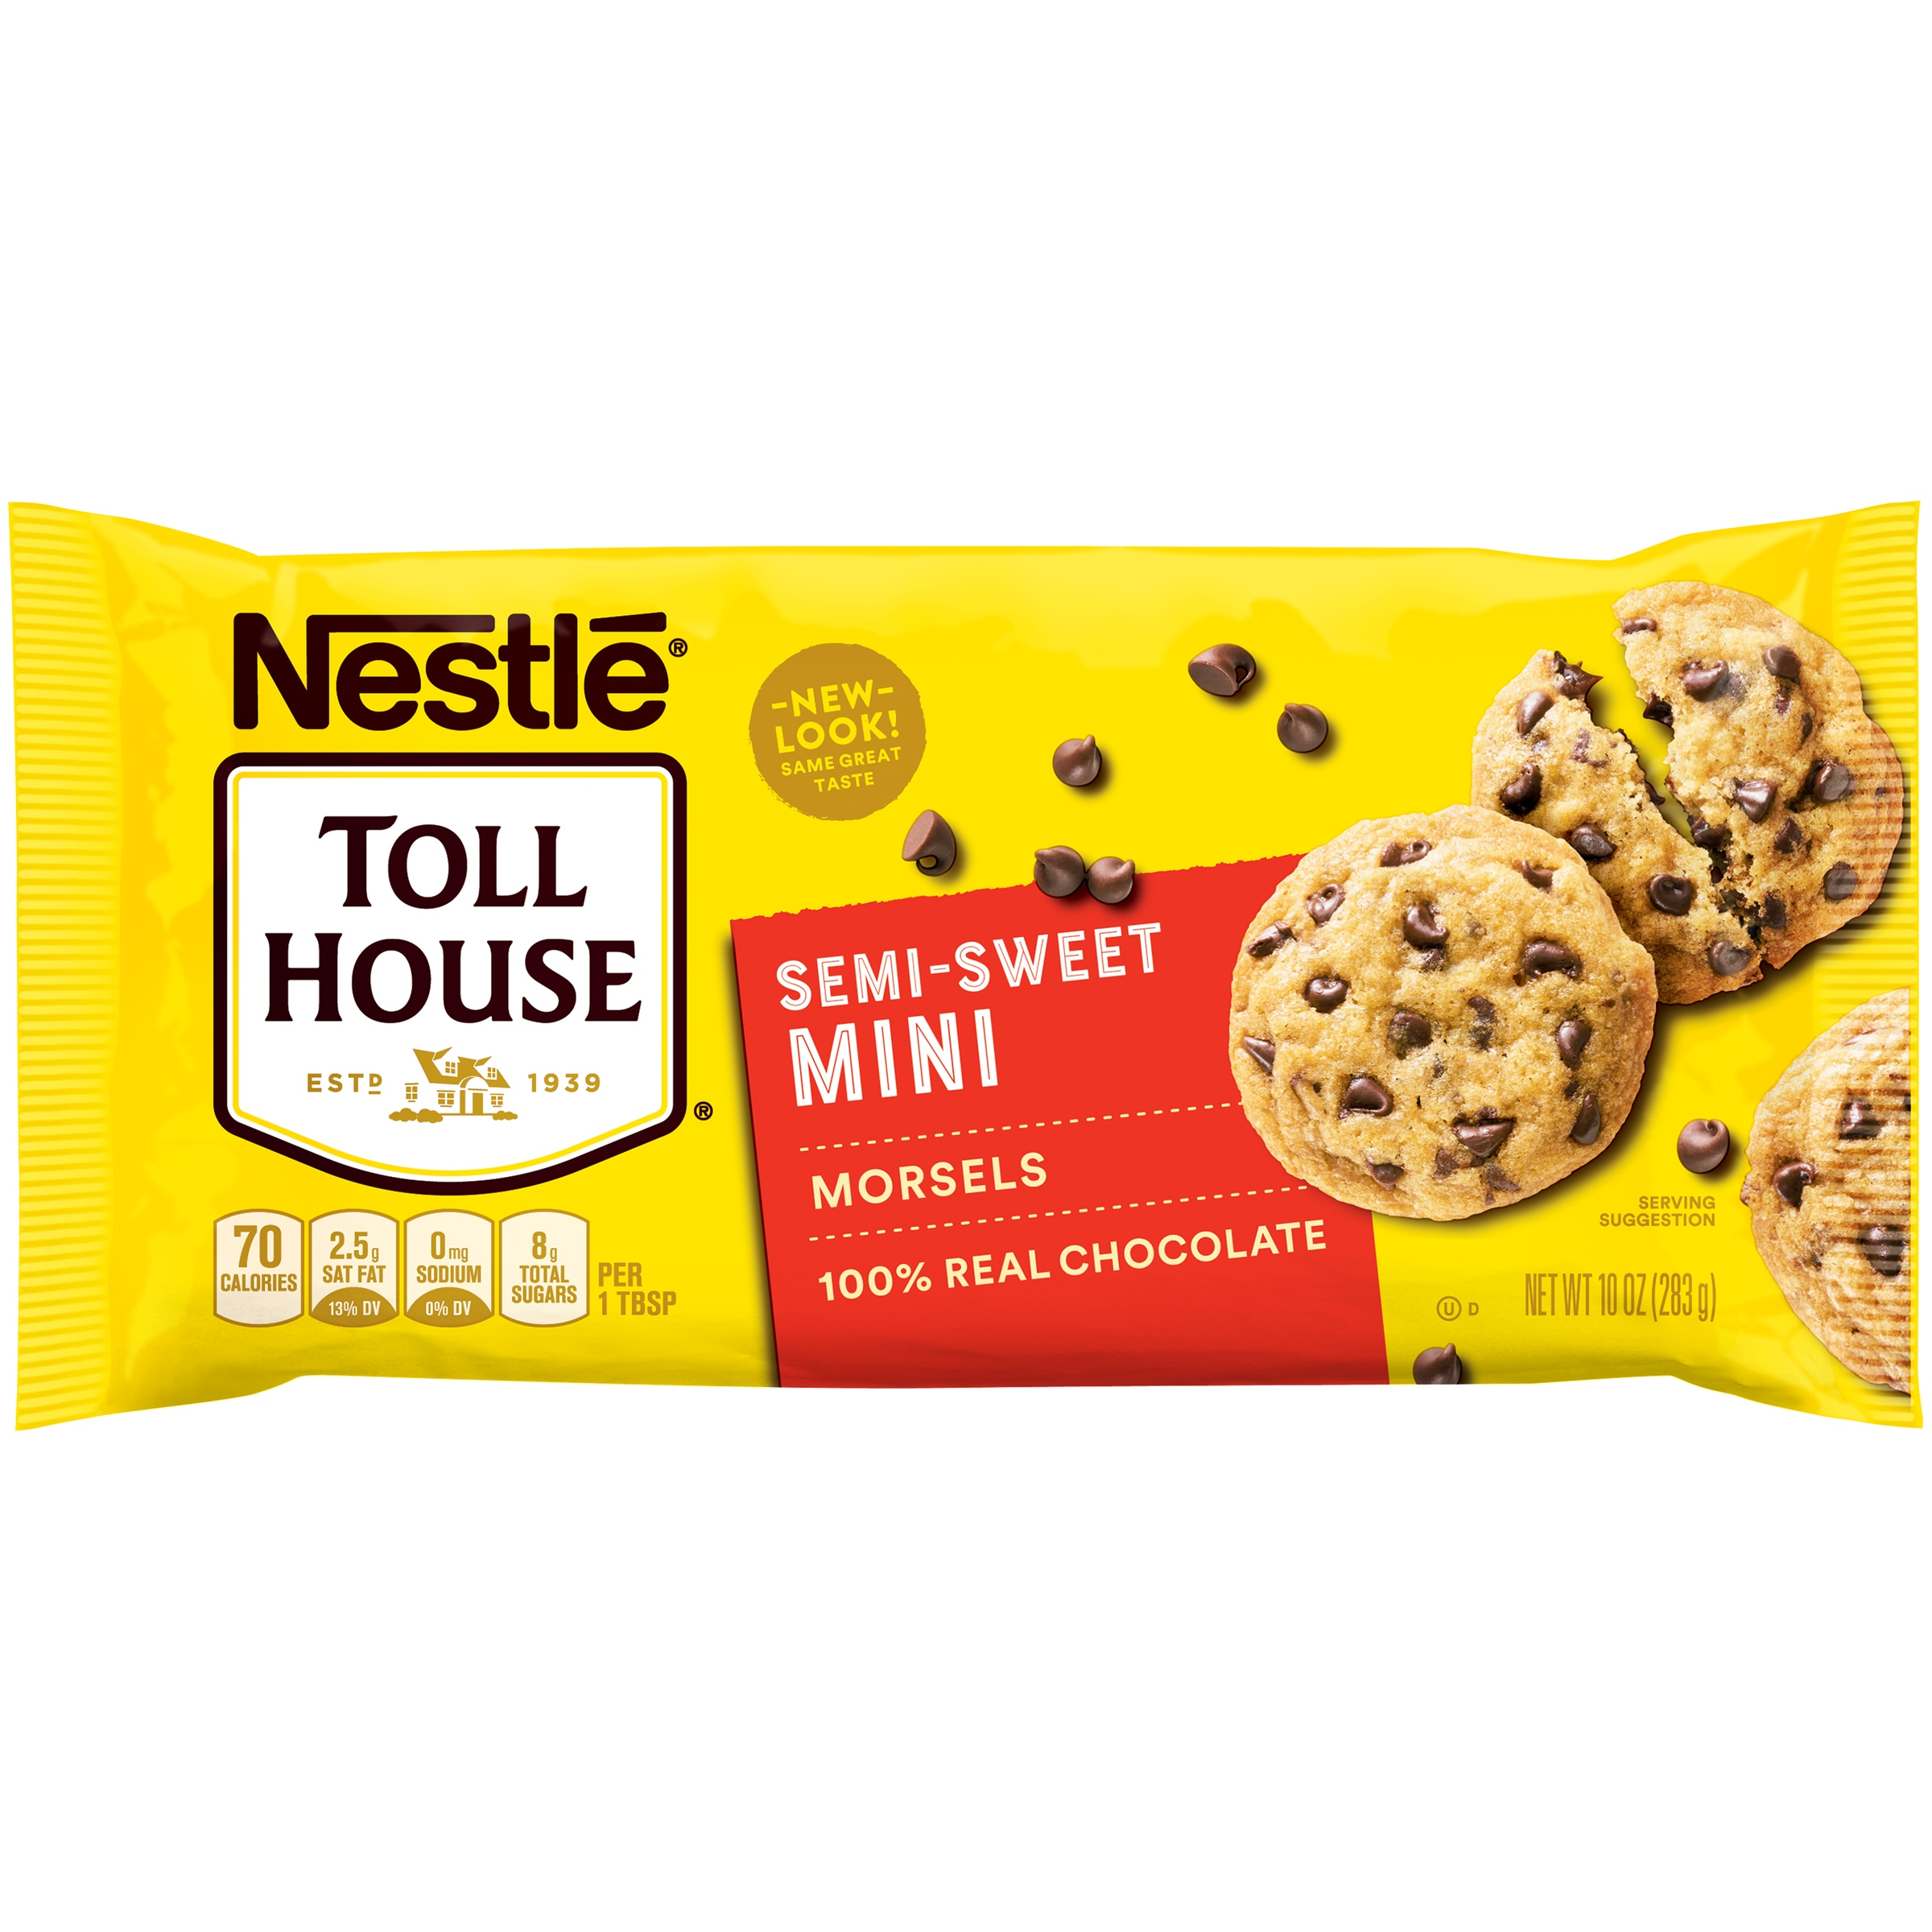 NESTLE TOLL HOUSE Semi-Sweet Mini Morsels 10 oz. Bag